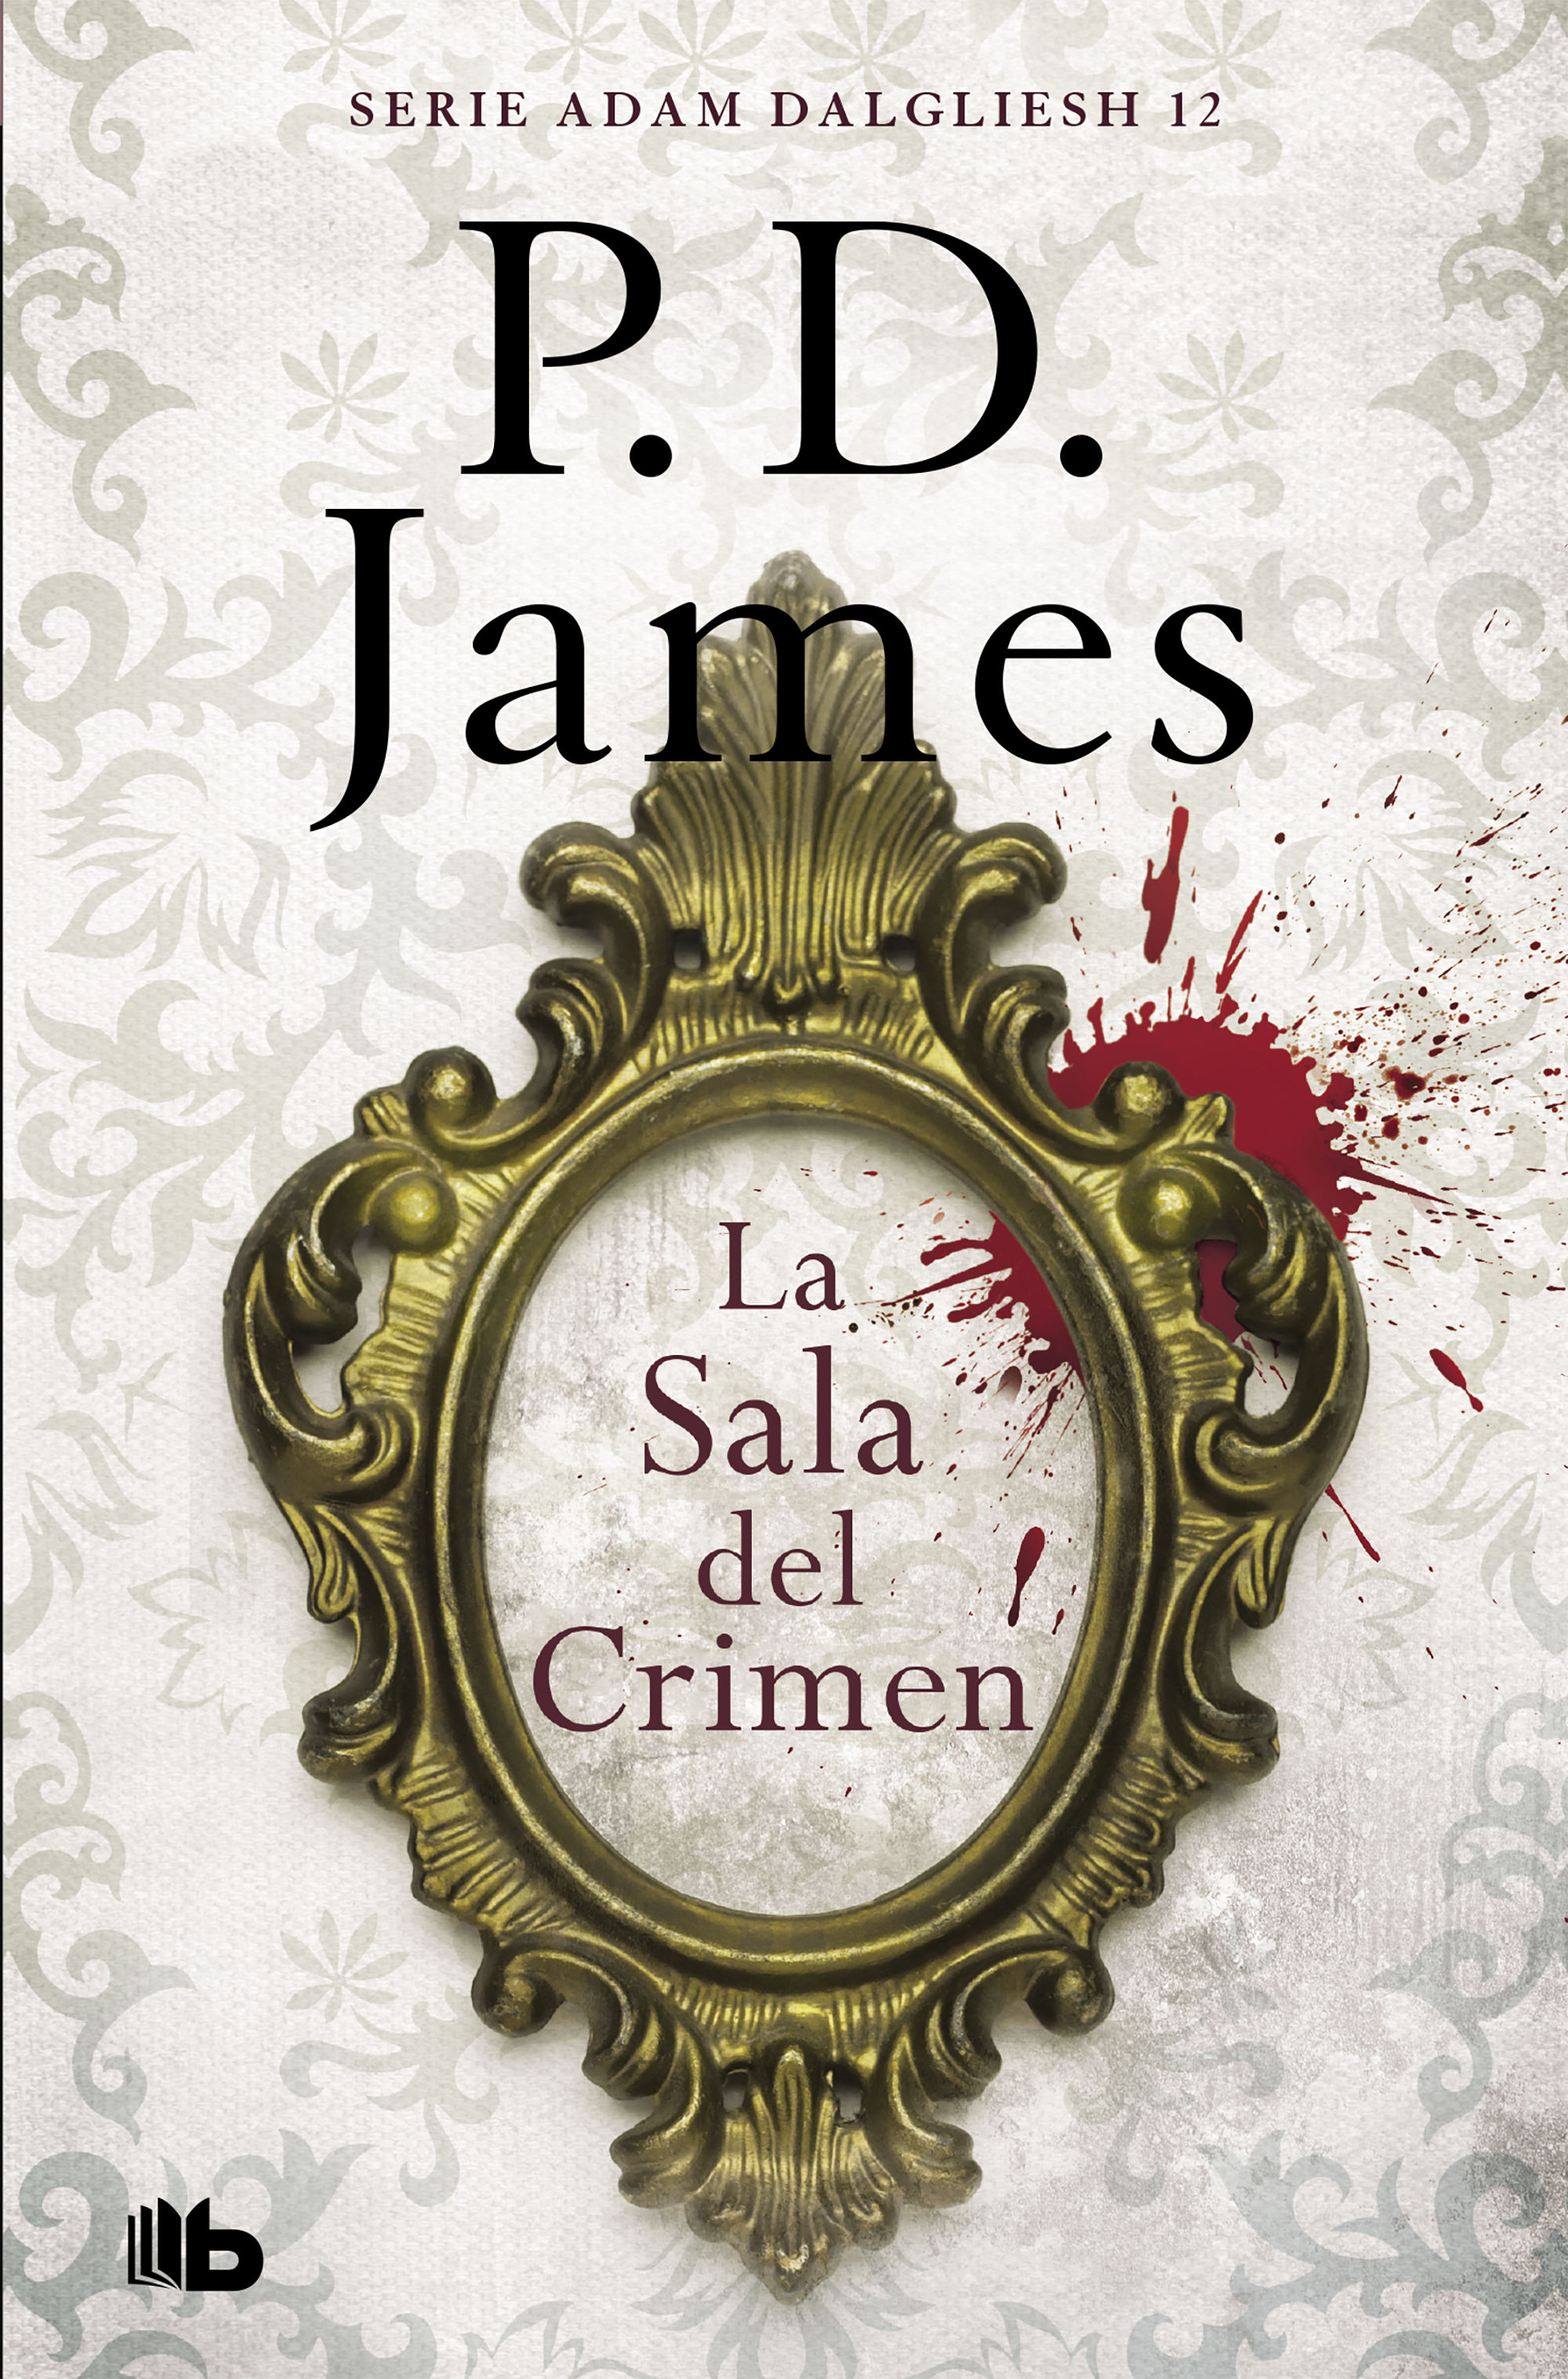 LA SALA DEL CRIMEN (ADAM DALGLIESH 12)